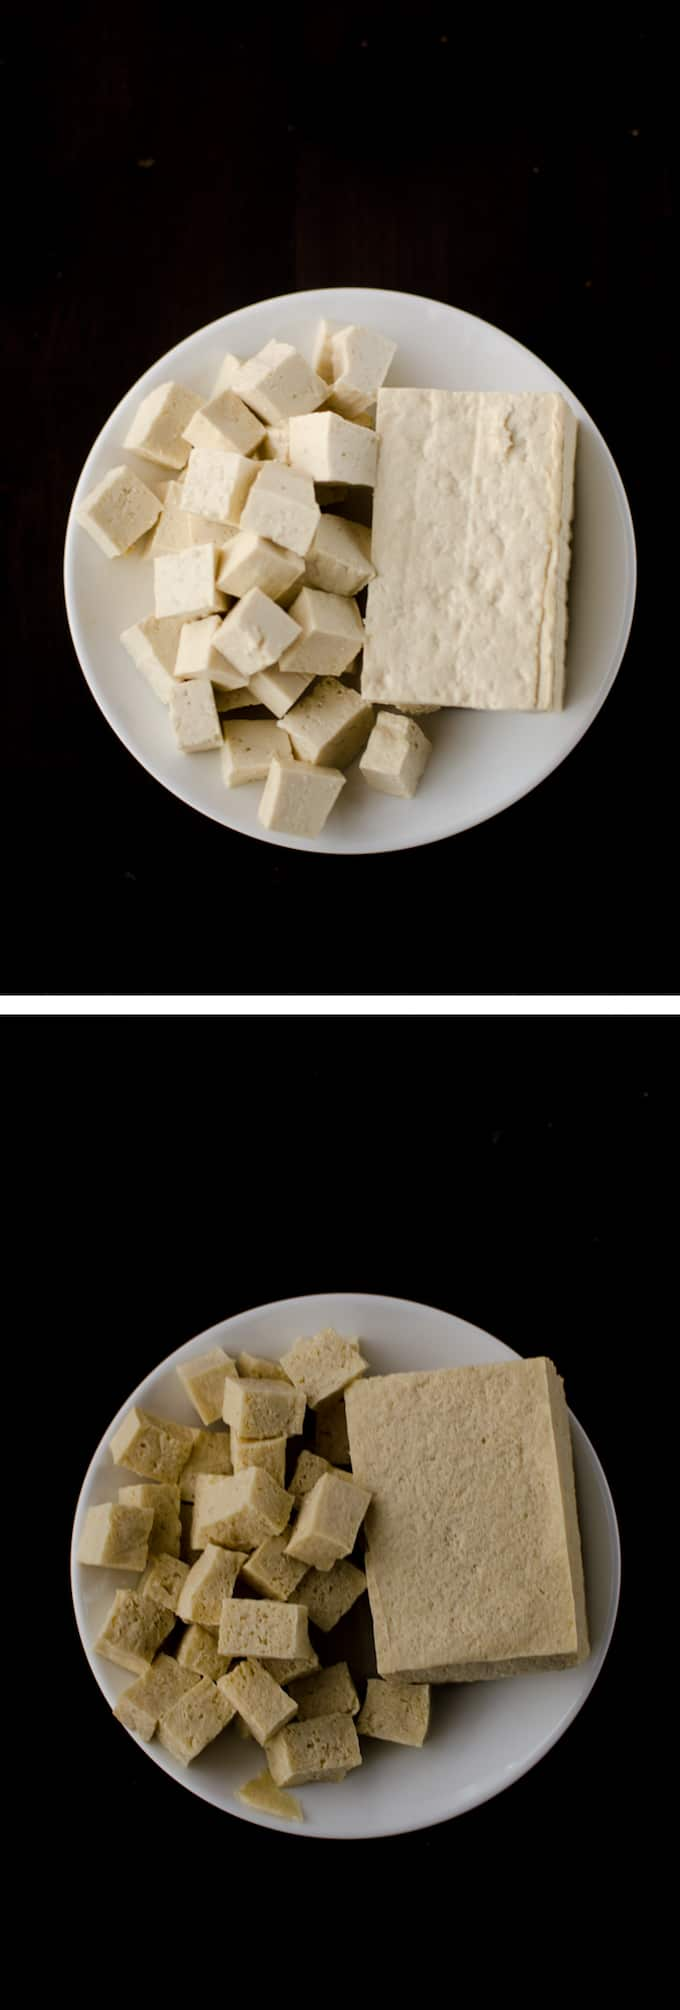 Overhead view of Regular Extra Firm Tofu compared with Defrosted Extra Firm Tofu on white plate and dark wood background. Stories from garlicdelight.com.